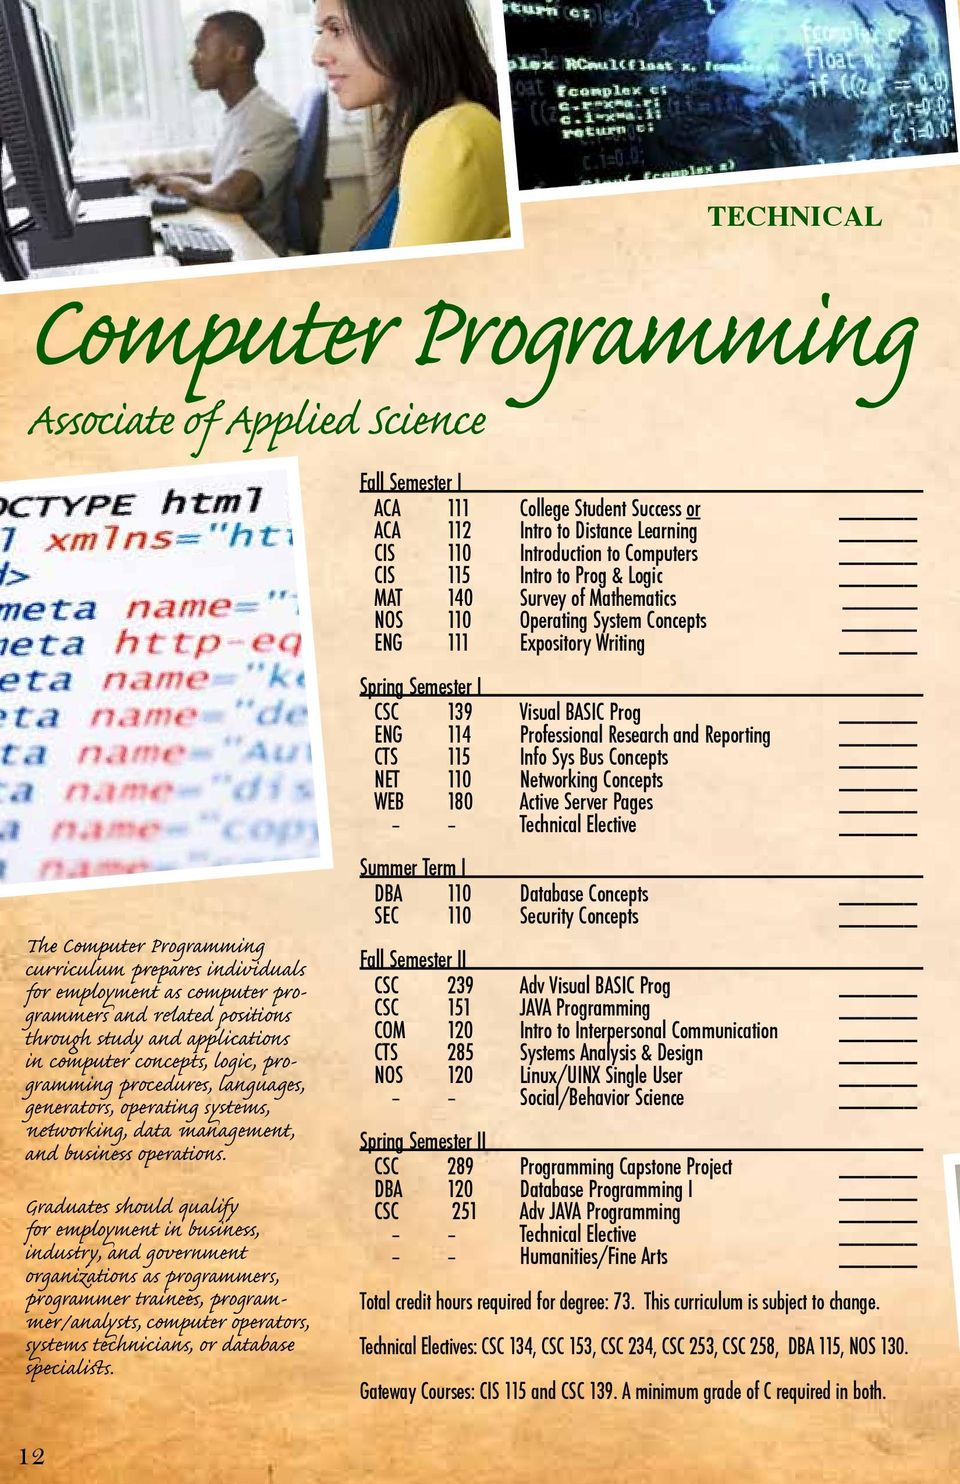 Info Sys Bus Concepts NET 110 Networking Concepts WEB 180 Active Server Pages Technical Elective The Computer Programming curriculum prepares individuals for employment as computer programmers and